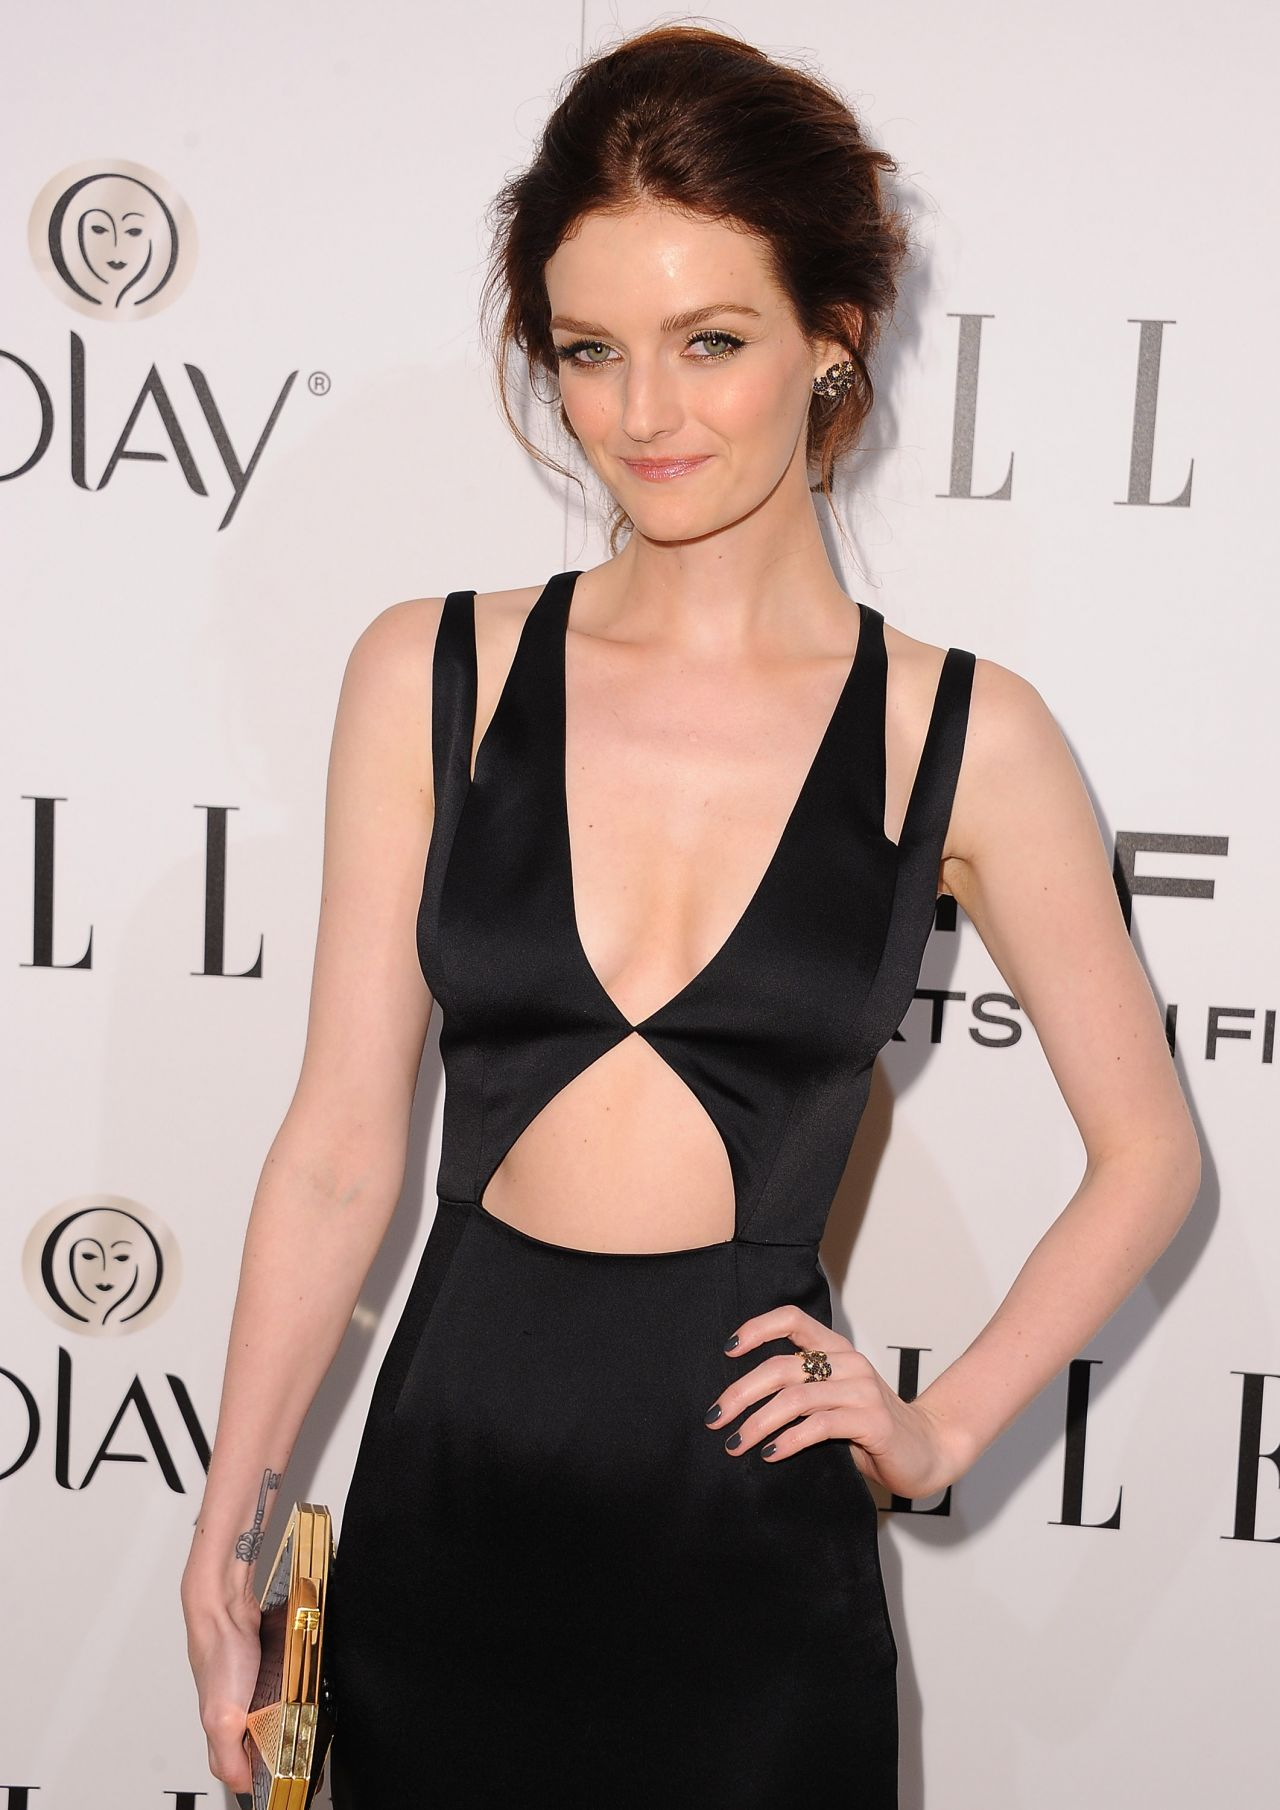 Lydia Hearst Wears Cushnie et Ochs at ELLEs Annual Women